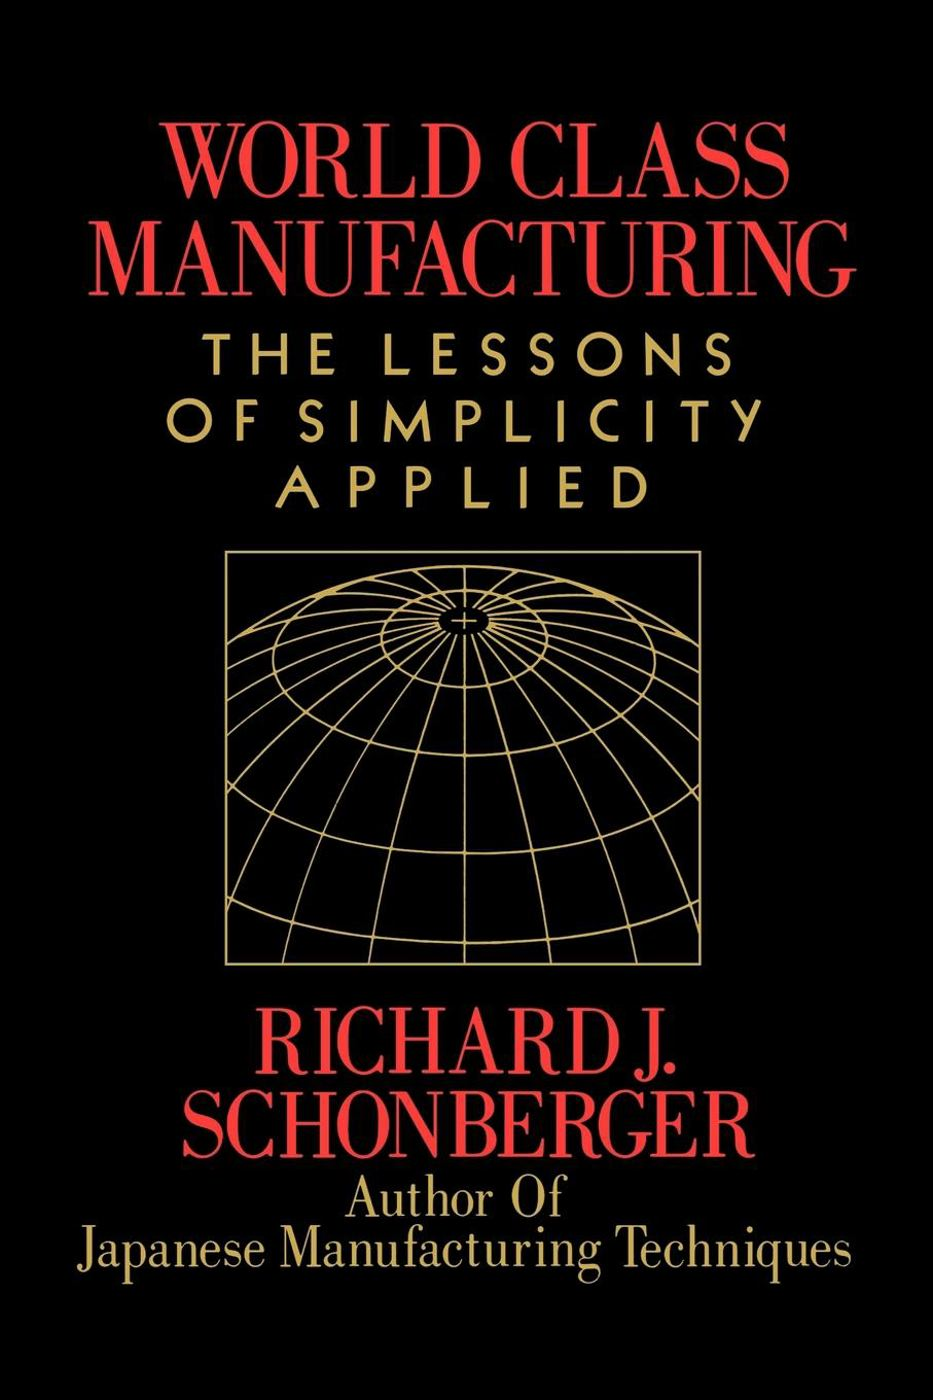 World Class Manufacturing: The Next Decade By: Richard J. Schonberger